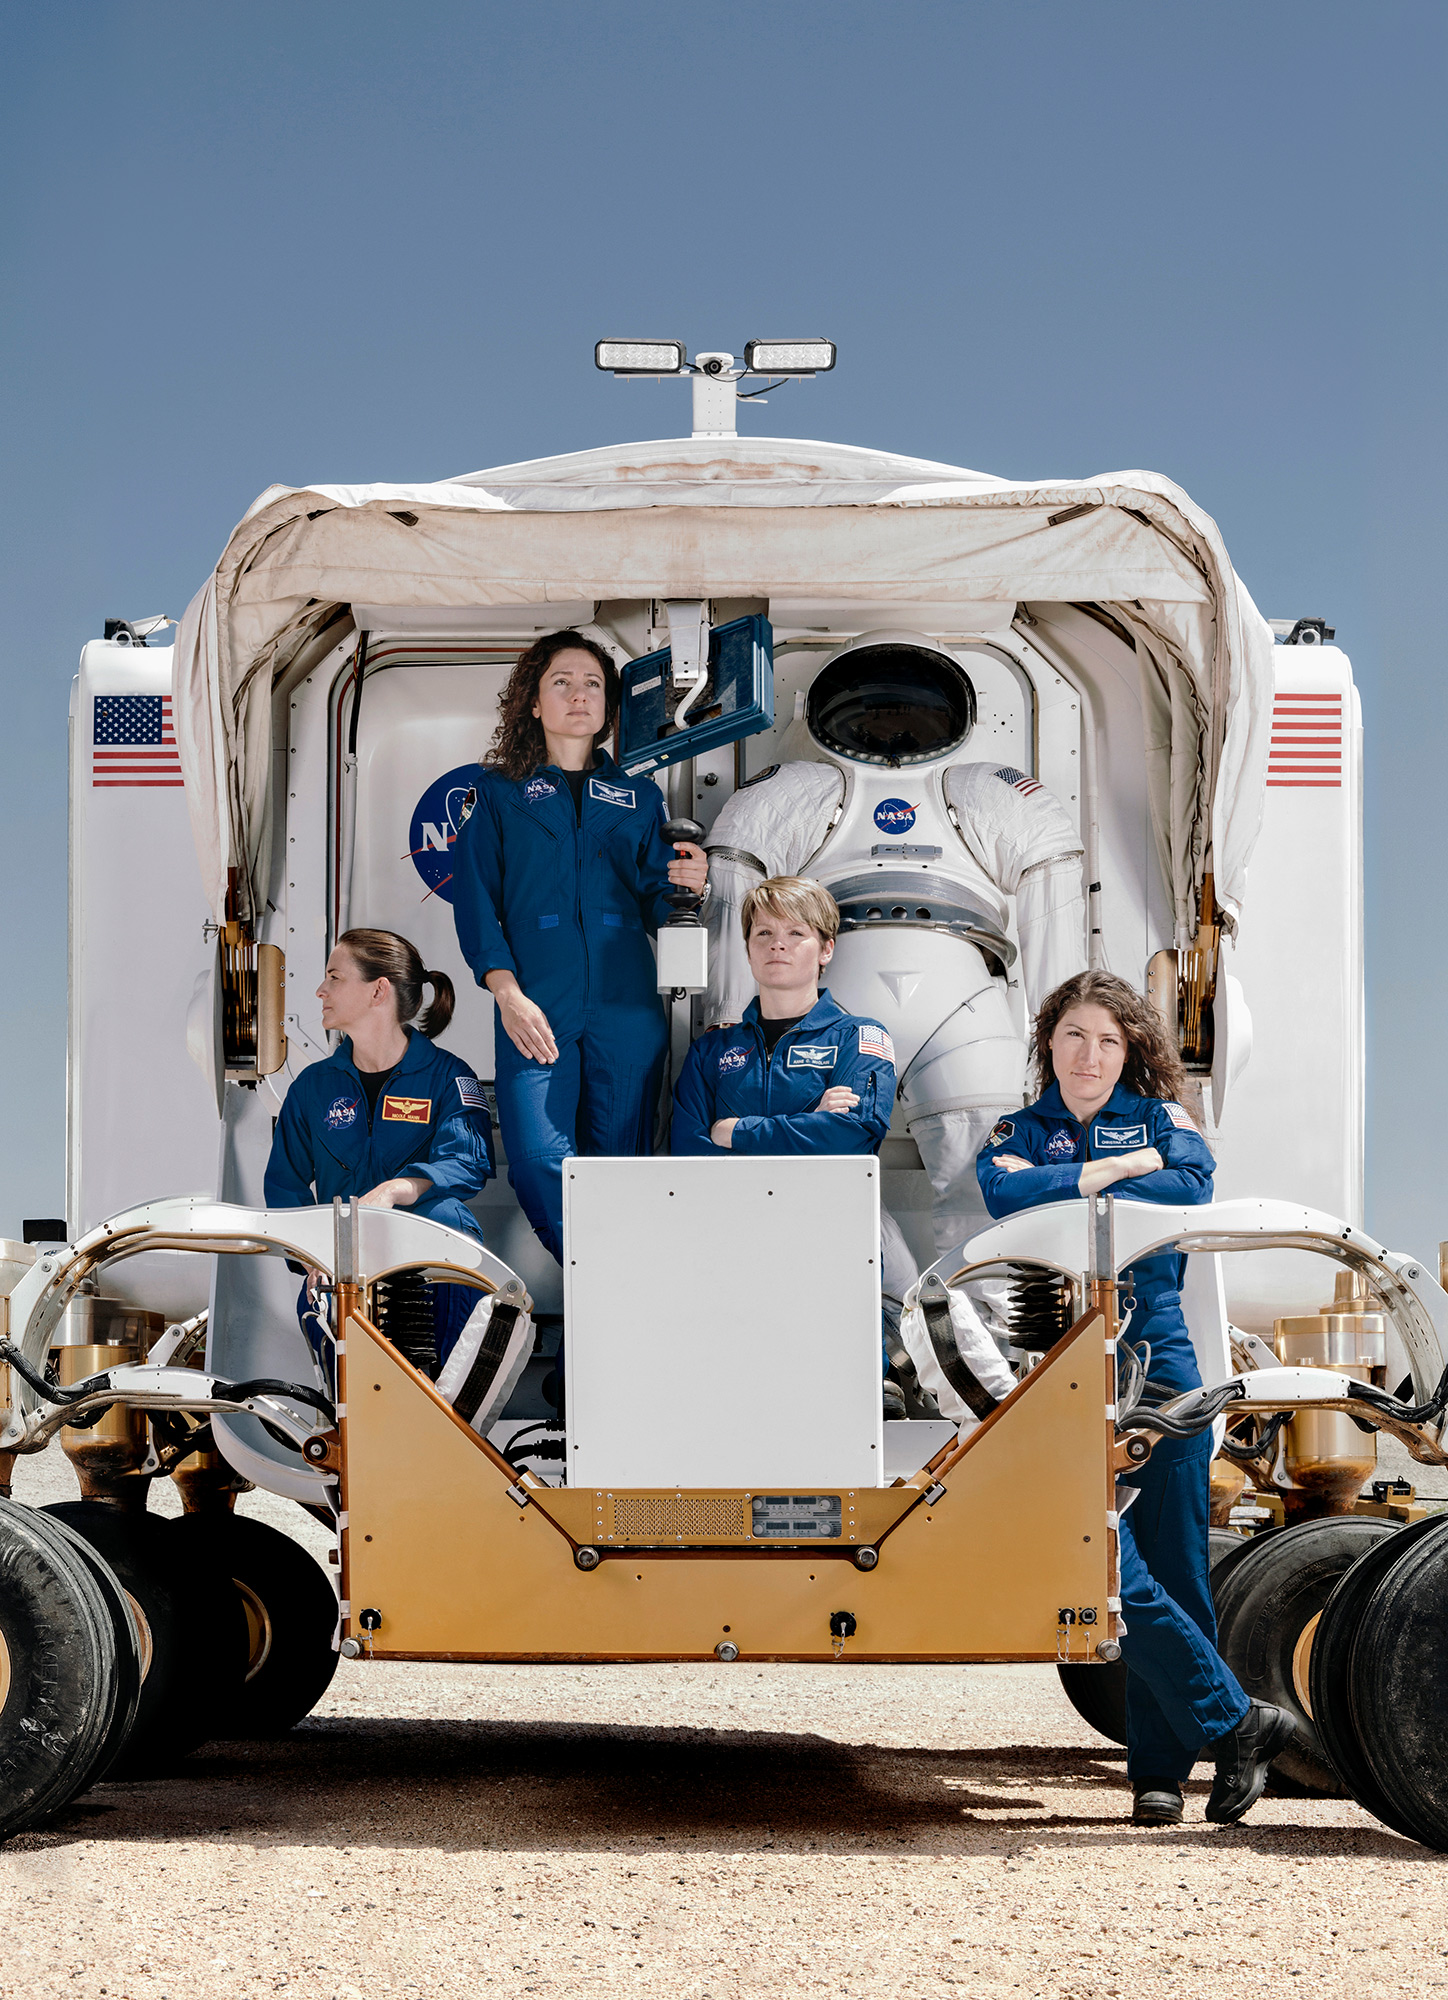 Christina Koch, Nicole Mann, Anne McClain and Jessica Meir, NASA astronauts, posed on the rear of the mars rover vehicle, photographed by Todd Spoth.